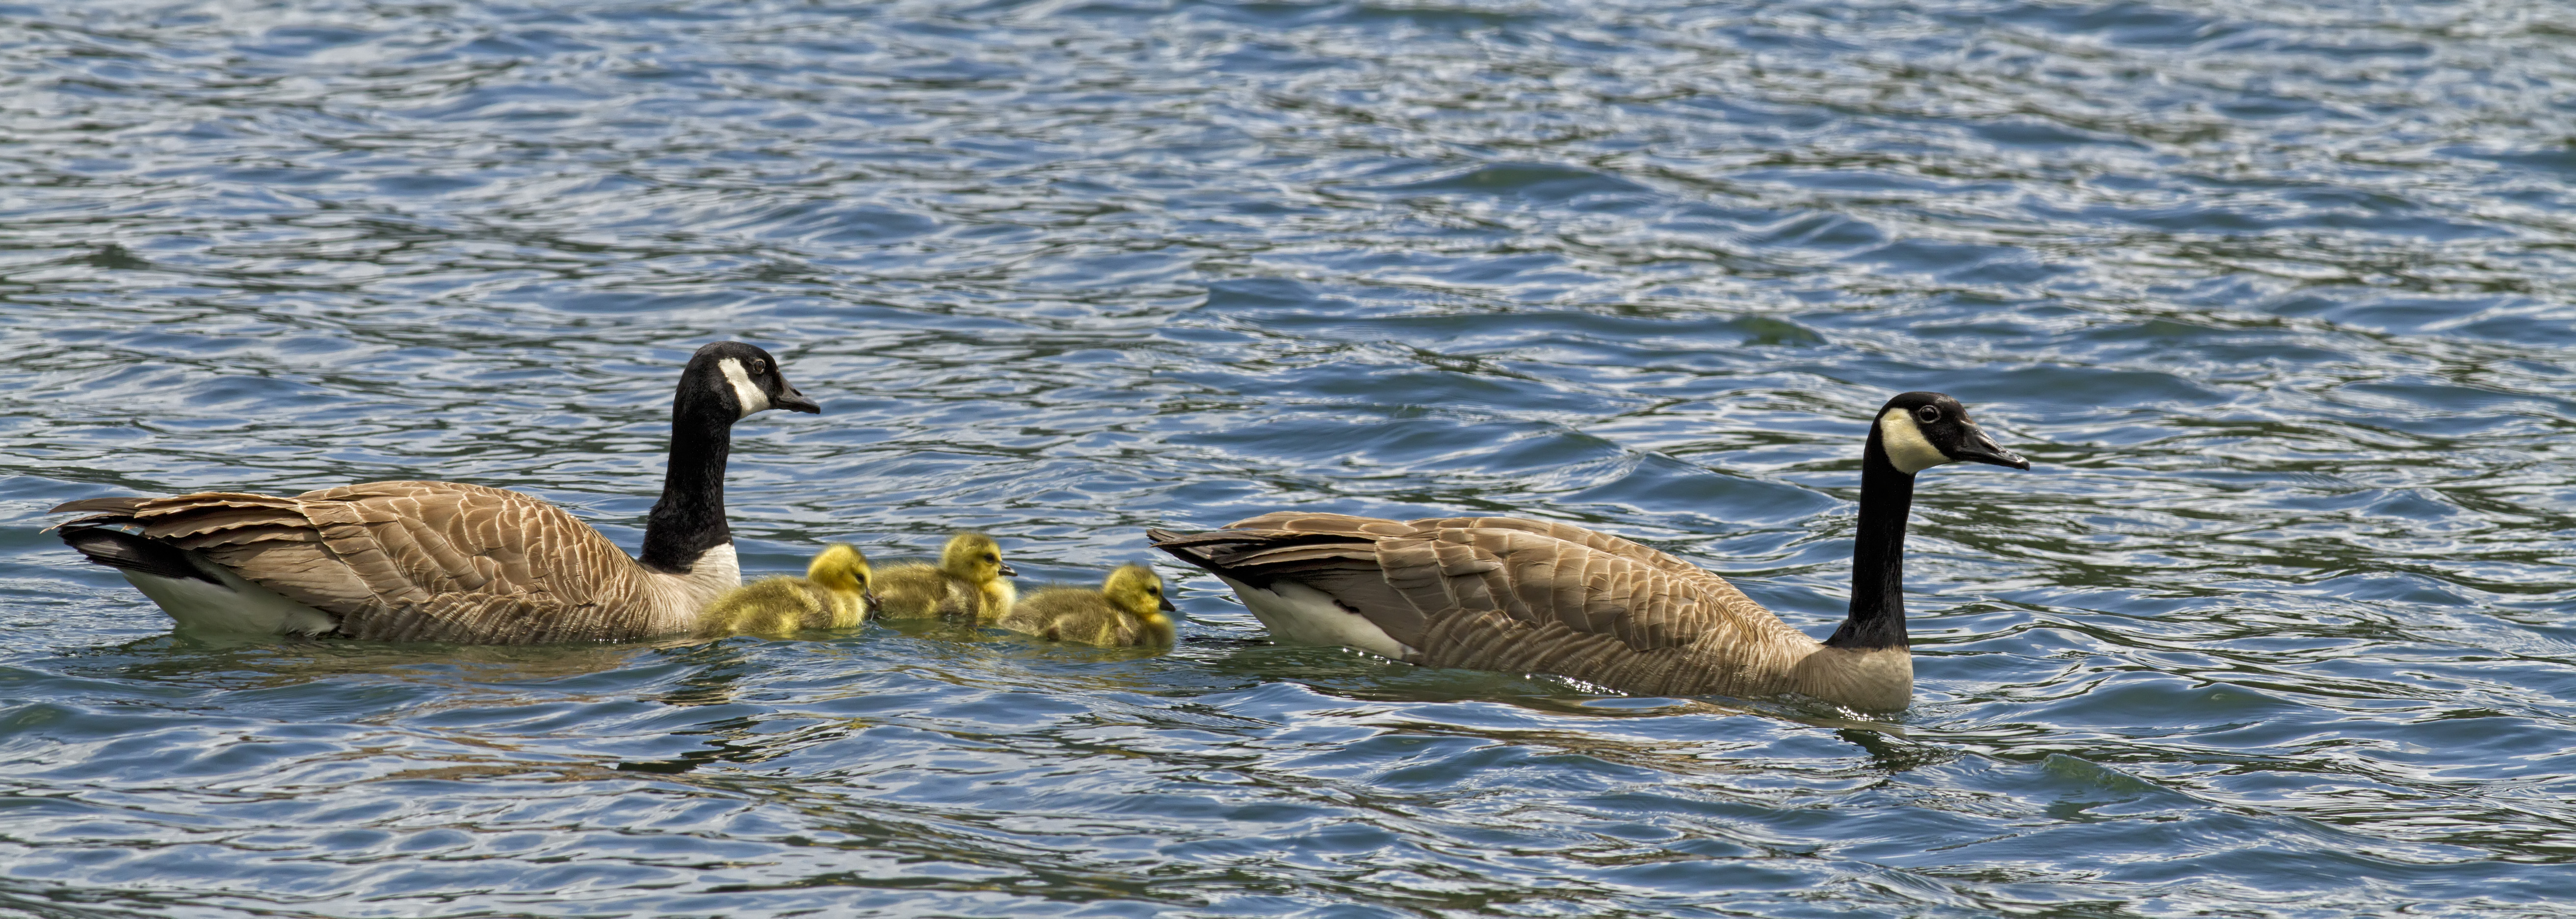 Goose Family_MG_9042 9047